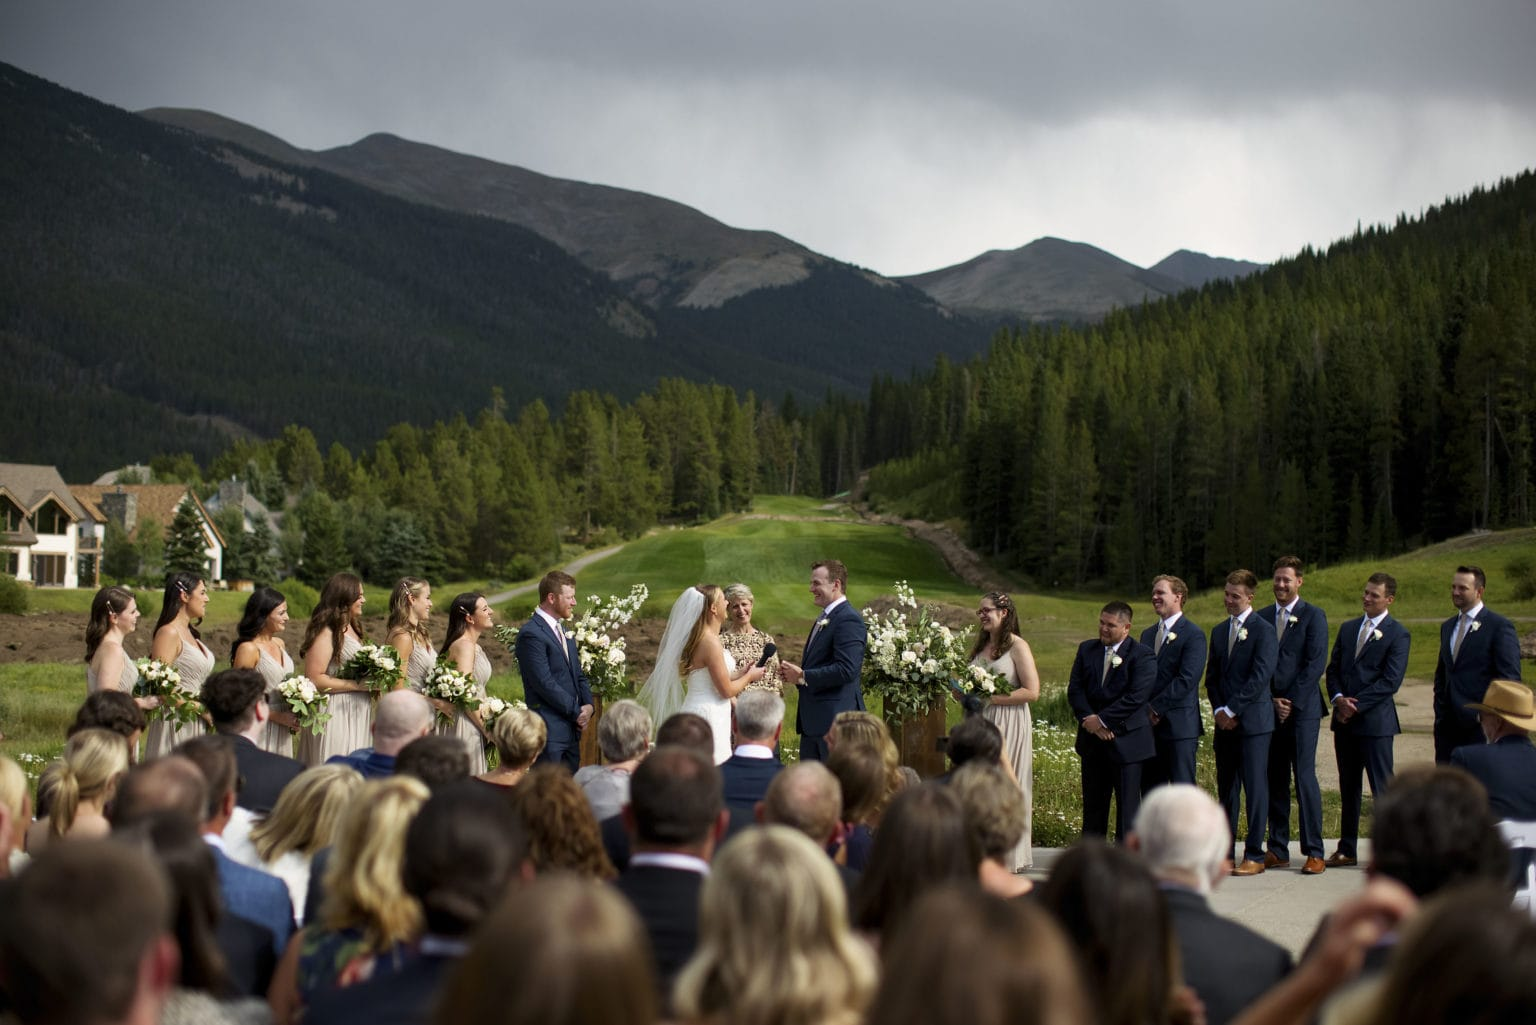 A view of the Mel and Drew's wedding ceremony on the Copper VIsta pad at Copper Mountain